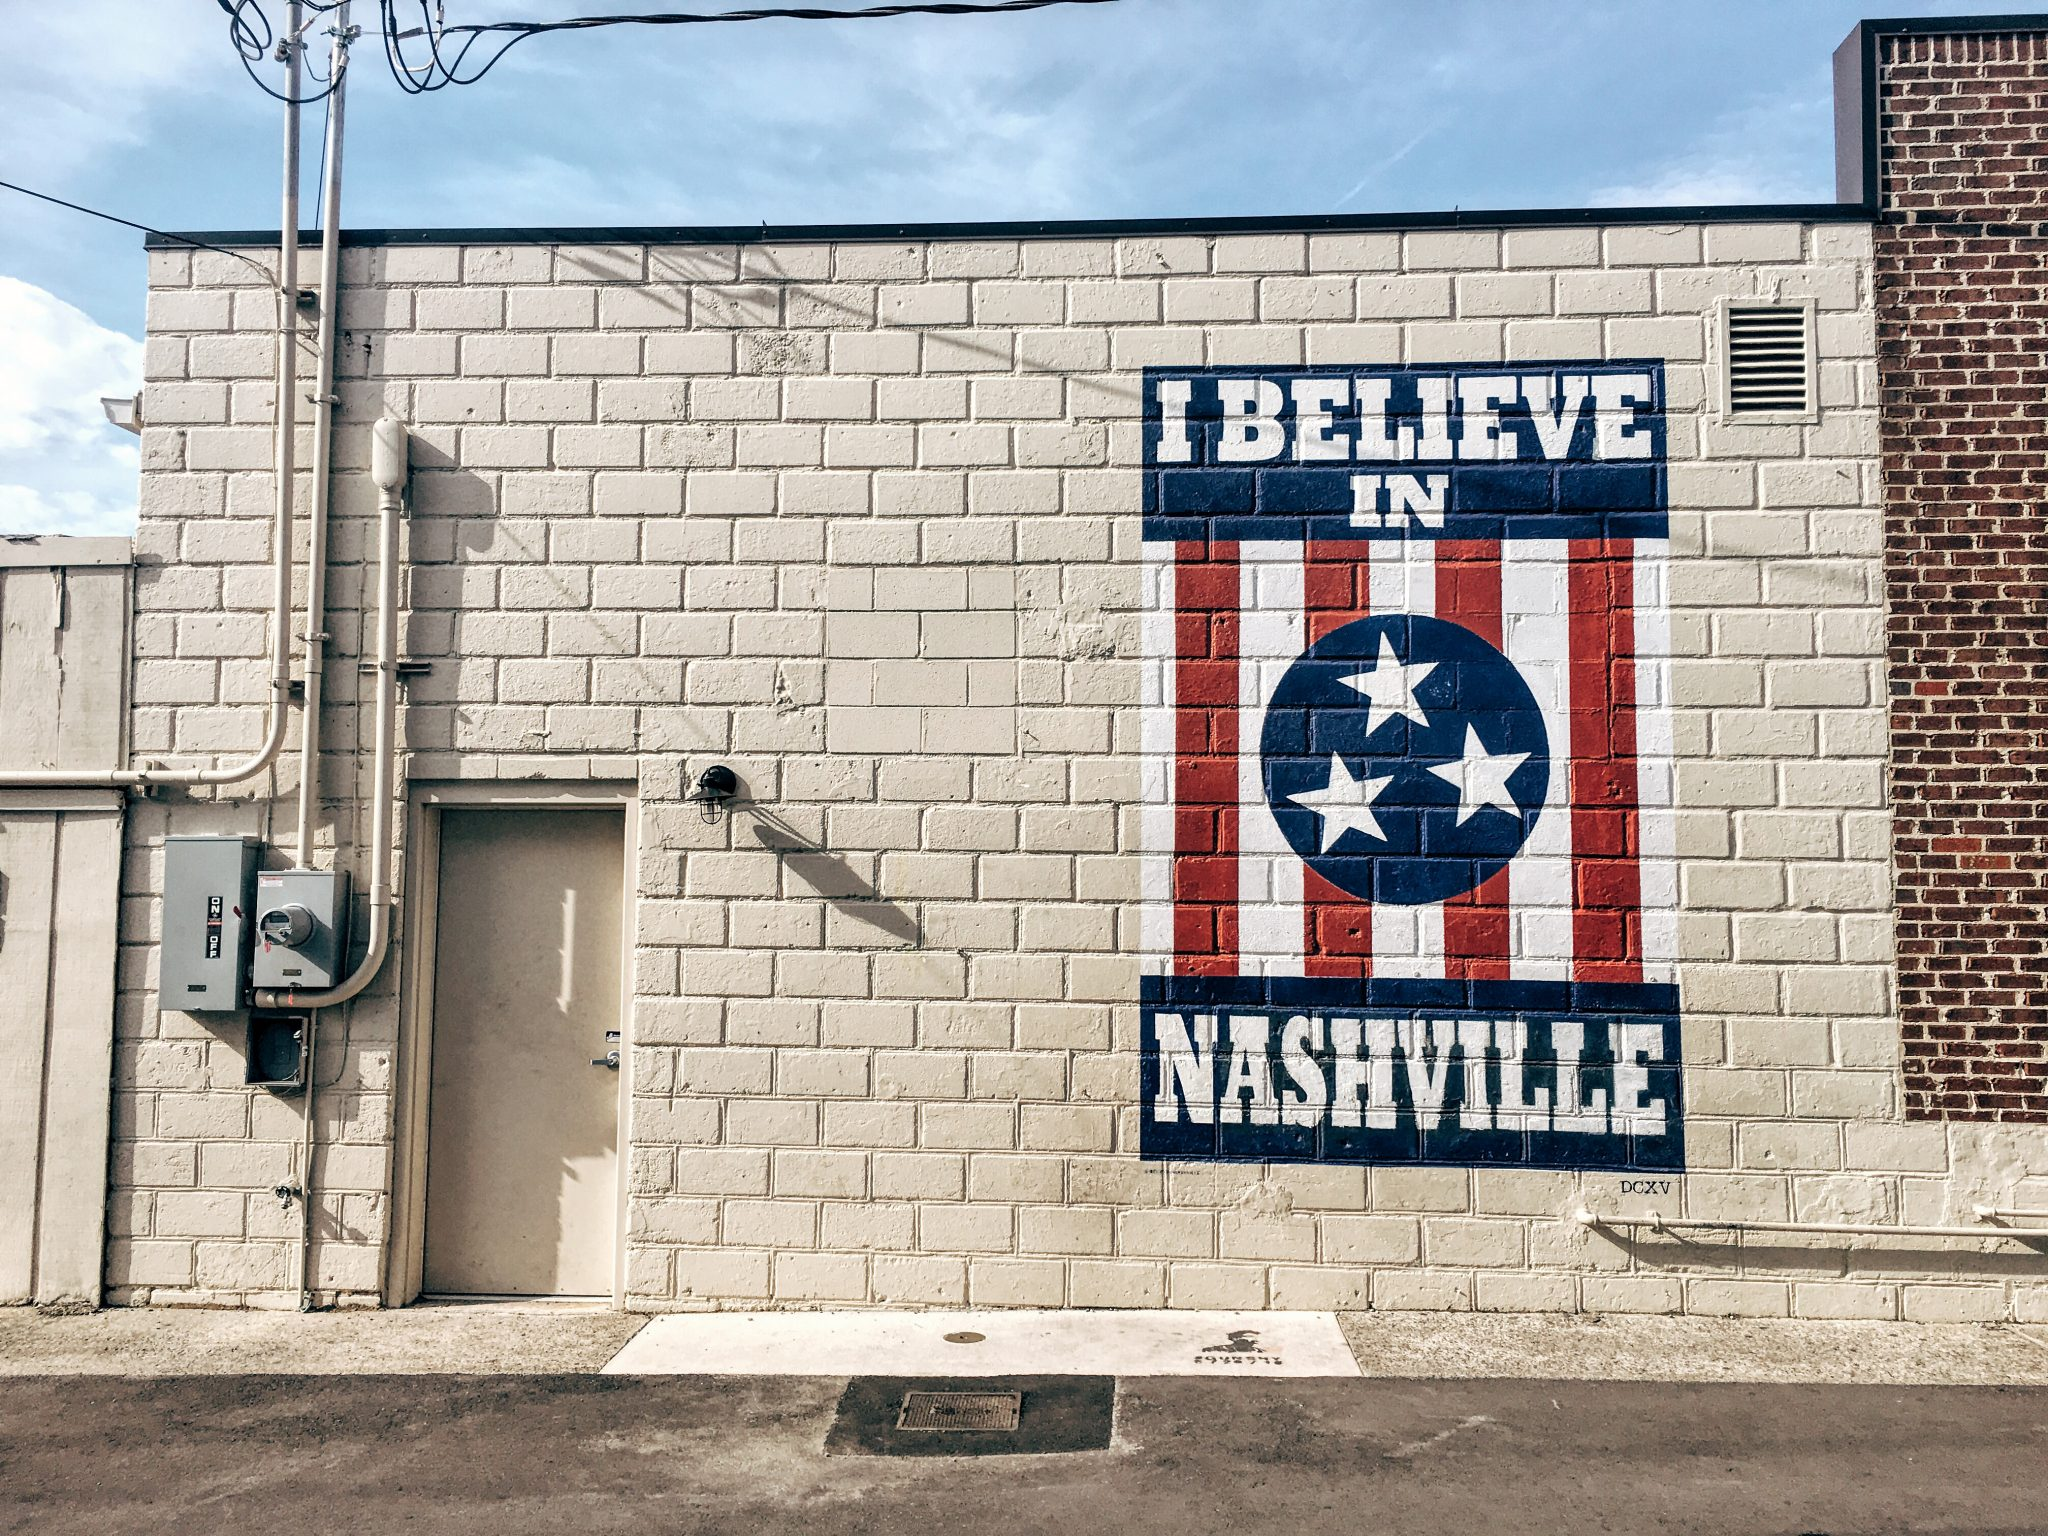 Where to Stay and Eat in Nashville - The Stopover by Meaghan